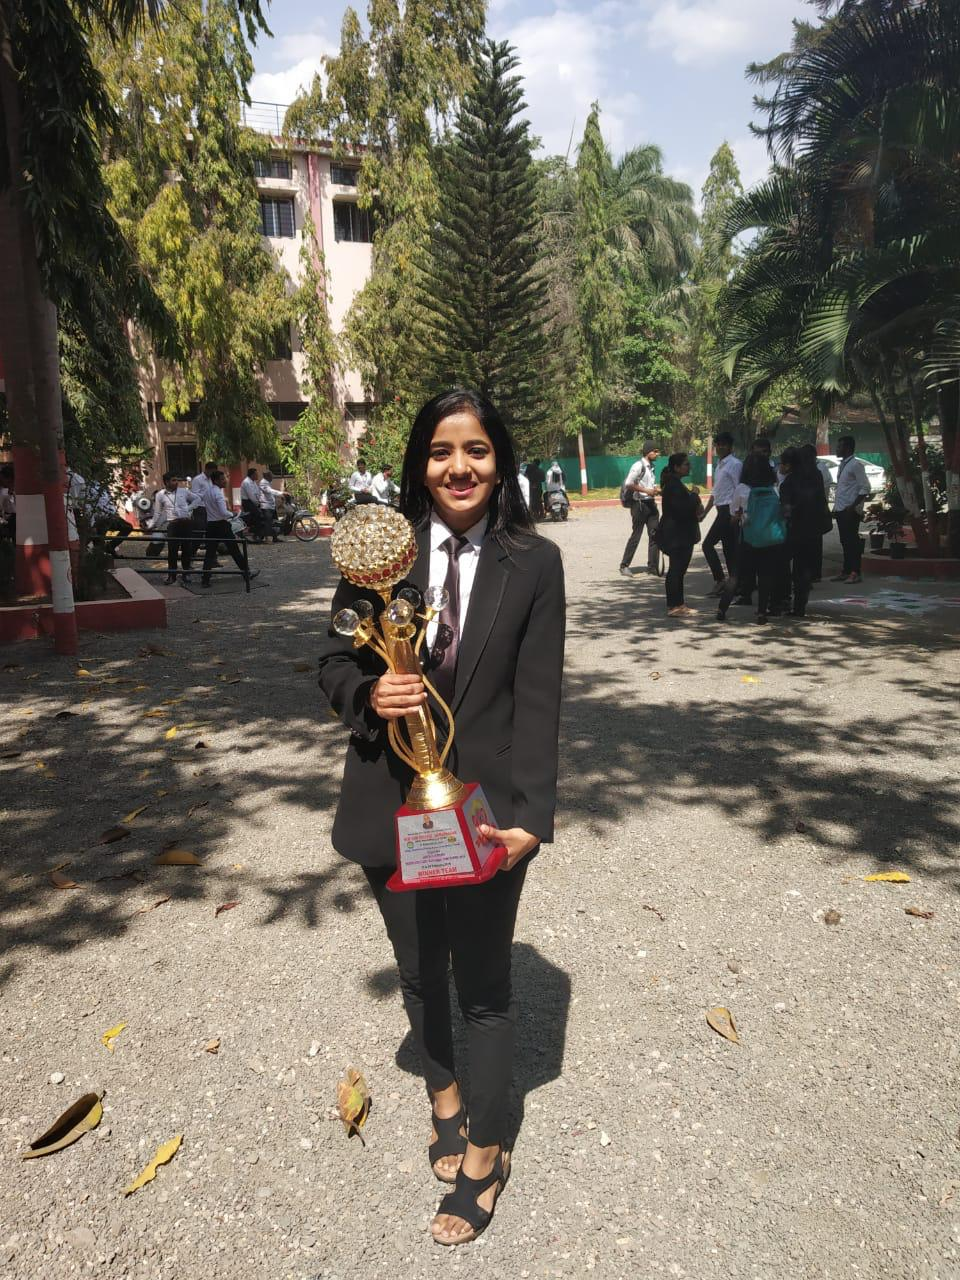 Moot court competition, Ahmednagar